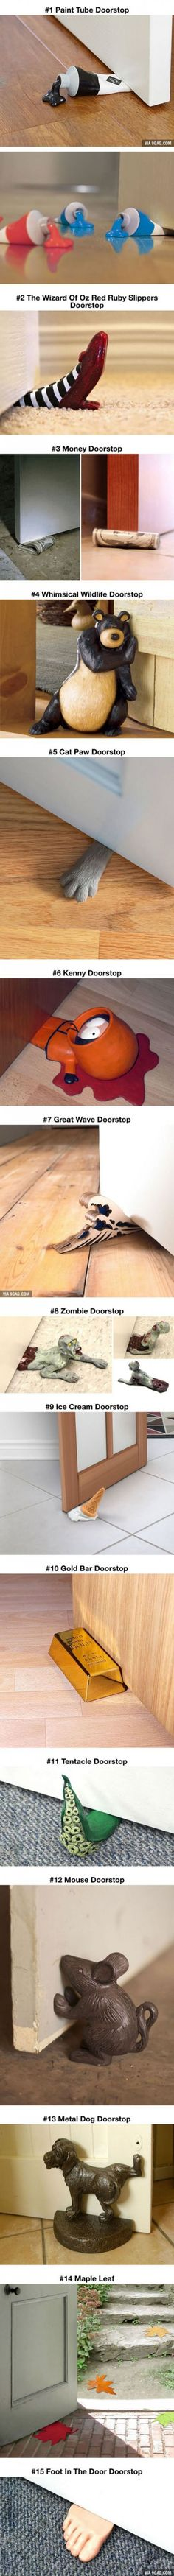 15 Creative Doorstops, You've Never Wanted A Doorstop This Much